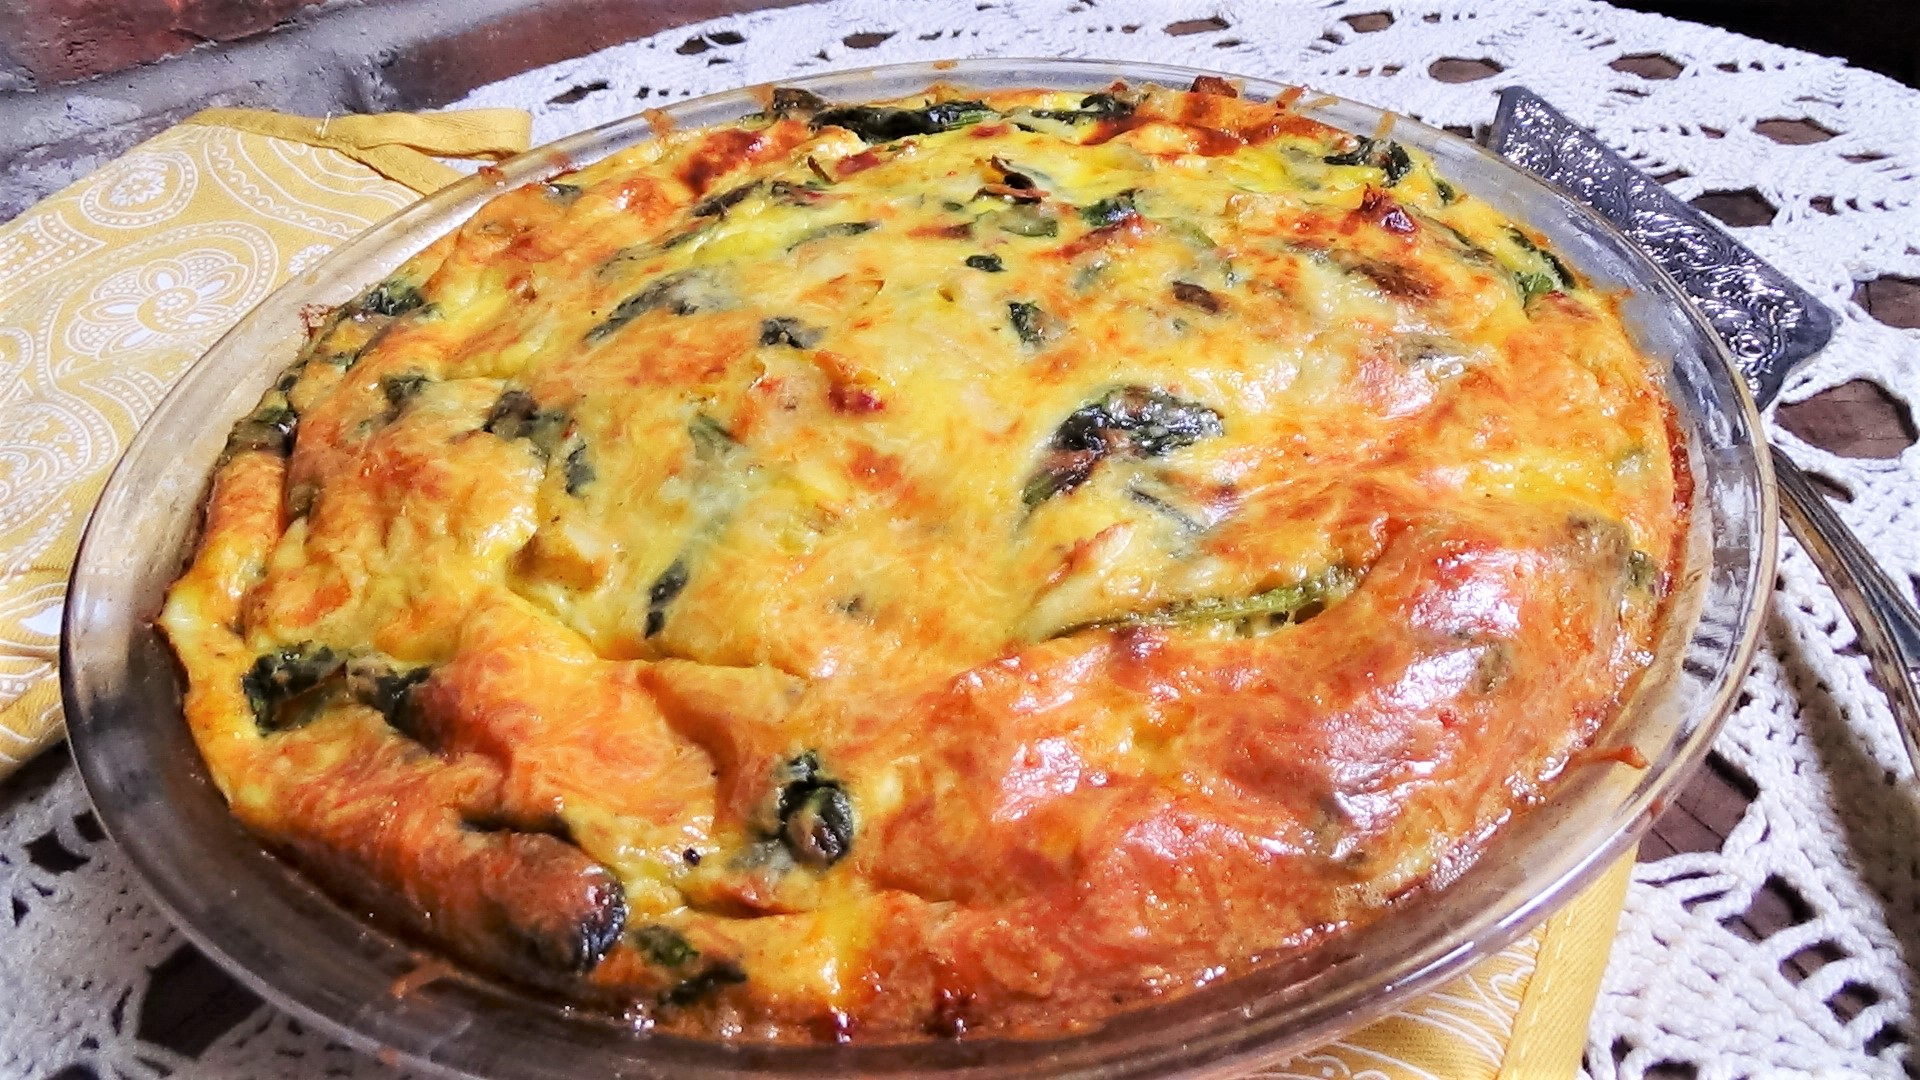 Artichoke, Spinach & Sun-dried Tomato Quiche